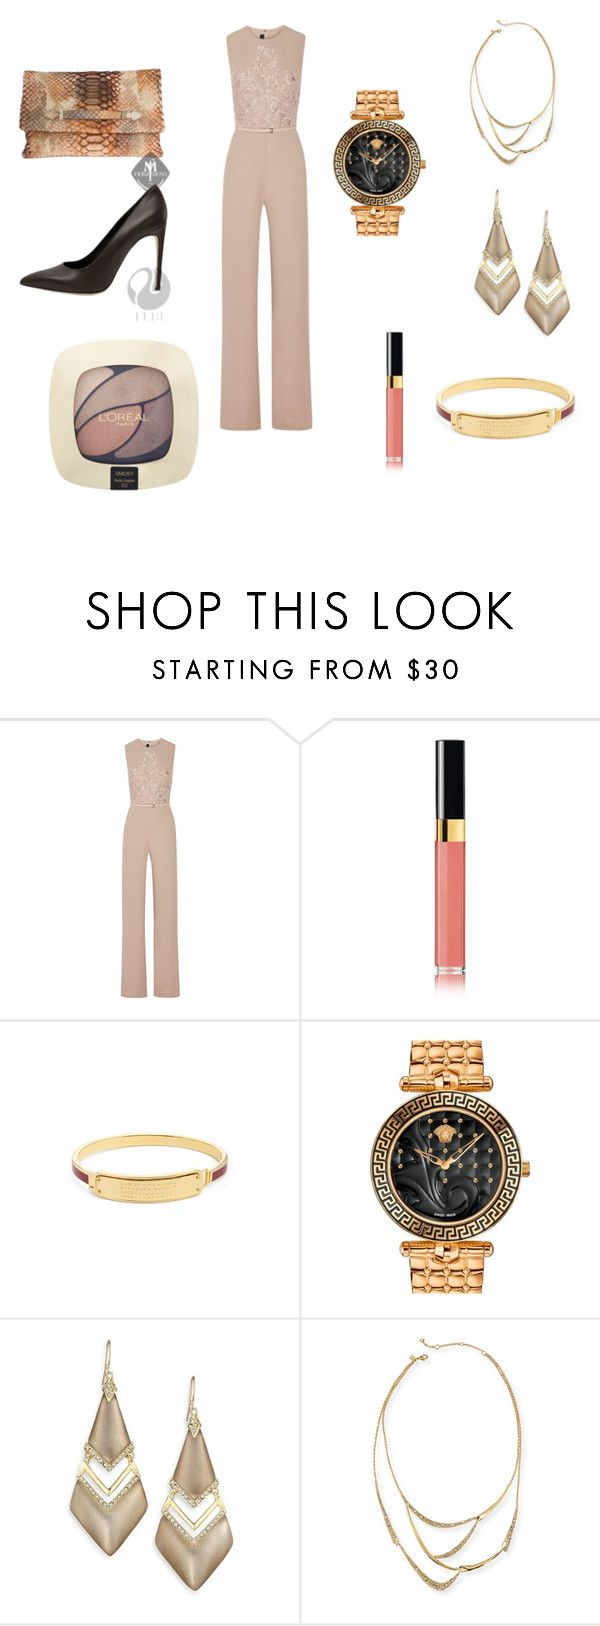 """Untitled #129"" by panicsam ❤ liked on Polyvore featuring Elie Saab, Chanel, Marc by Marc Jacobs, Versace, Alexis Bittar and L'Oréal Paris"